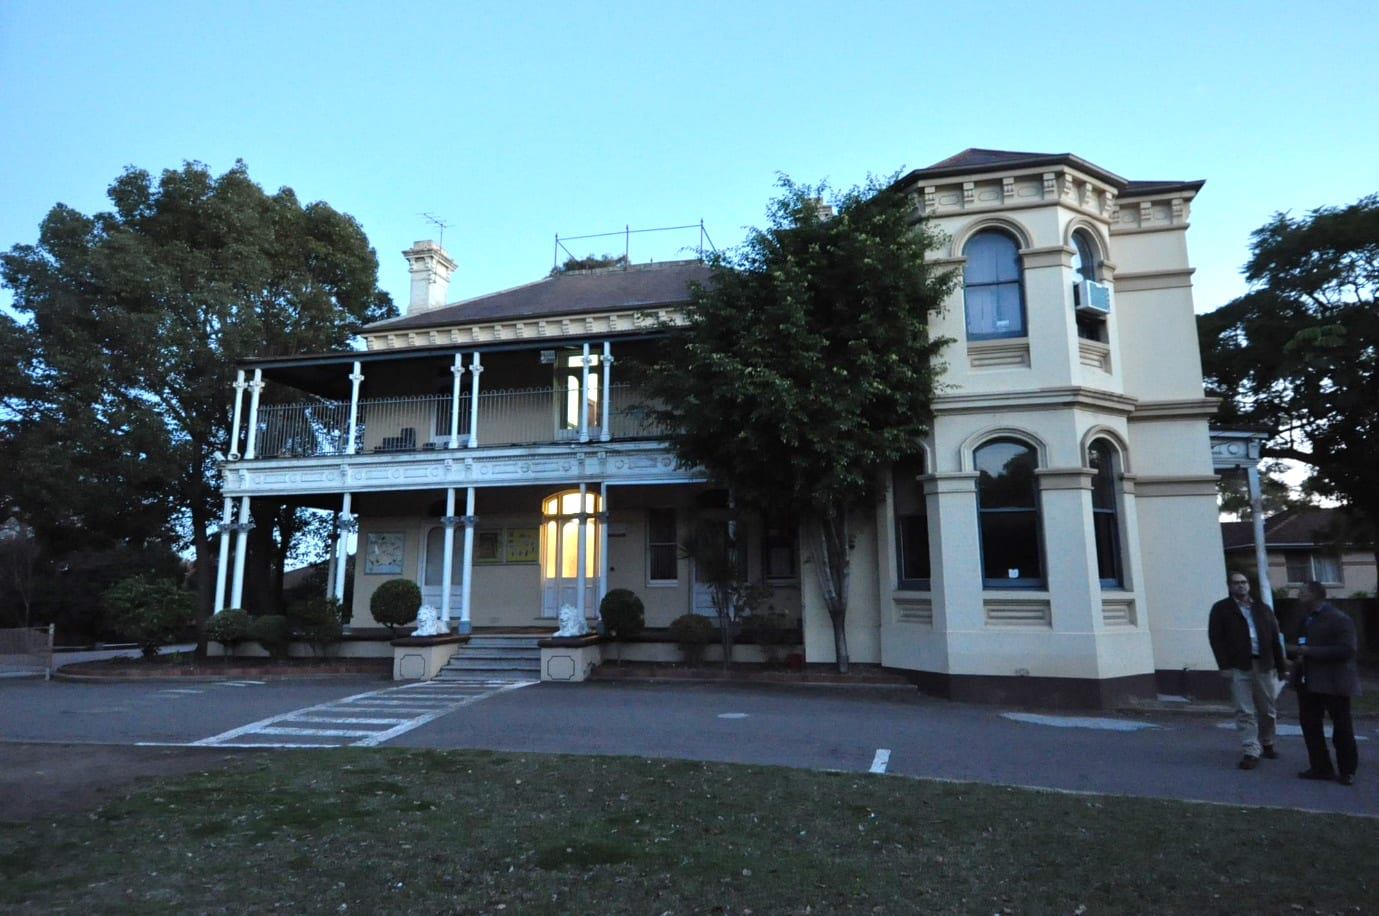 Fig 1 - previous dwelling, now a school building North Strathfield, NSW, Australia